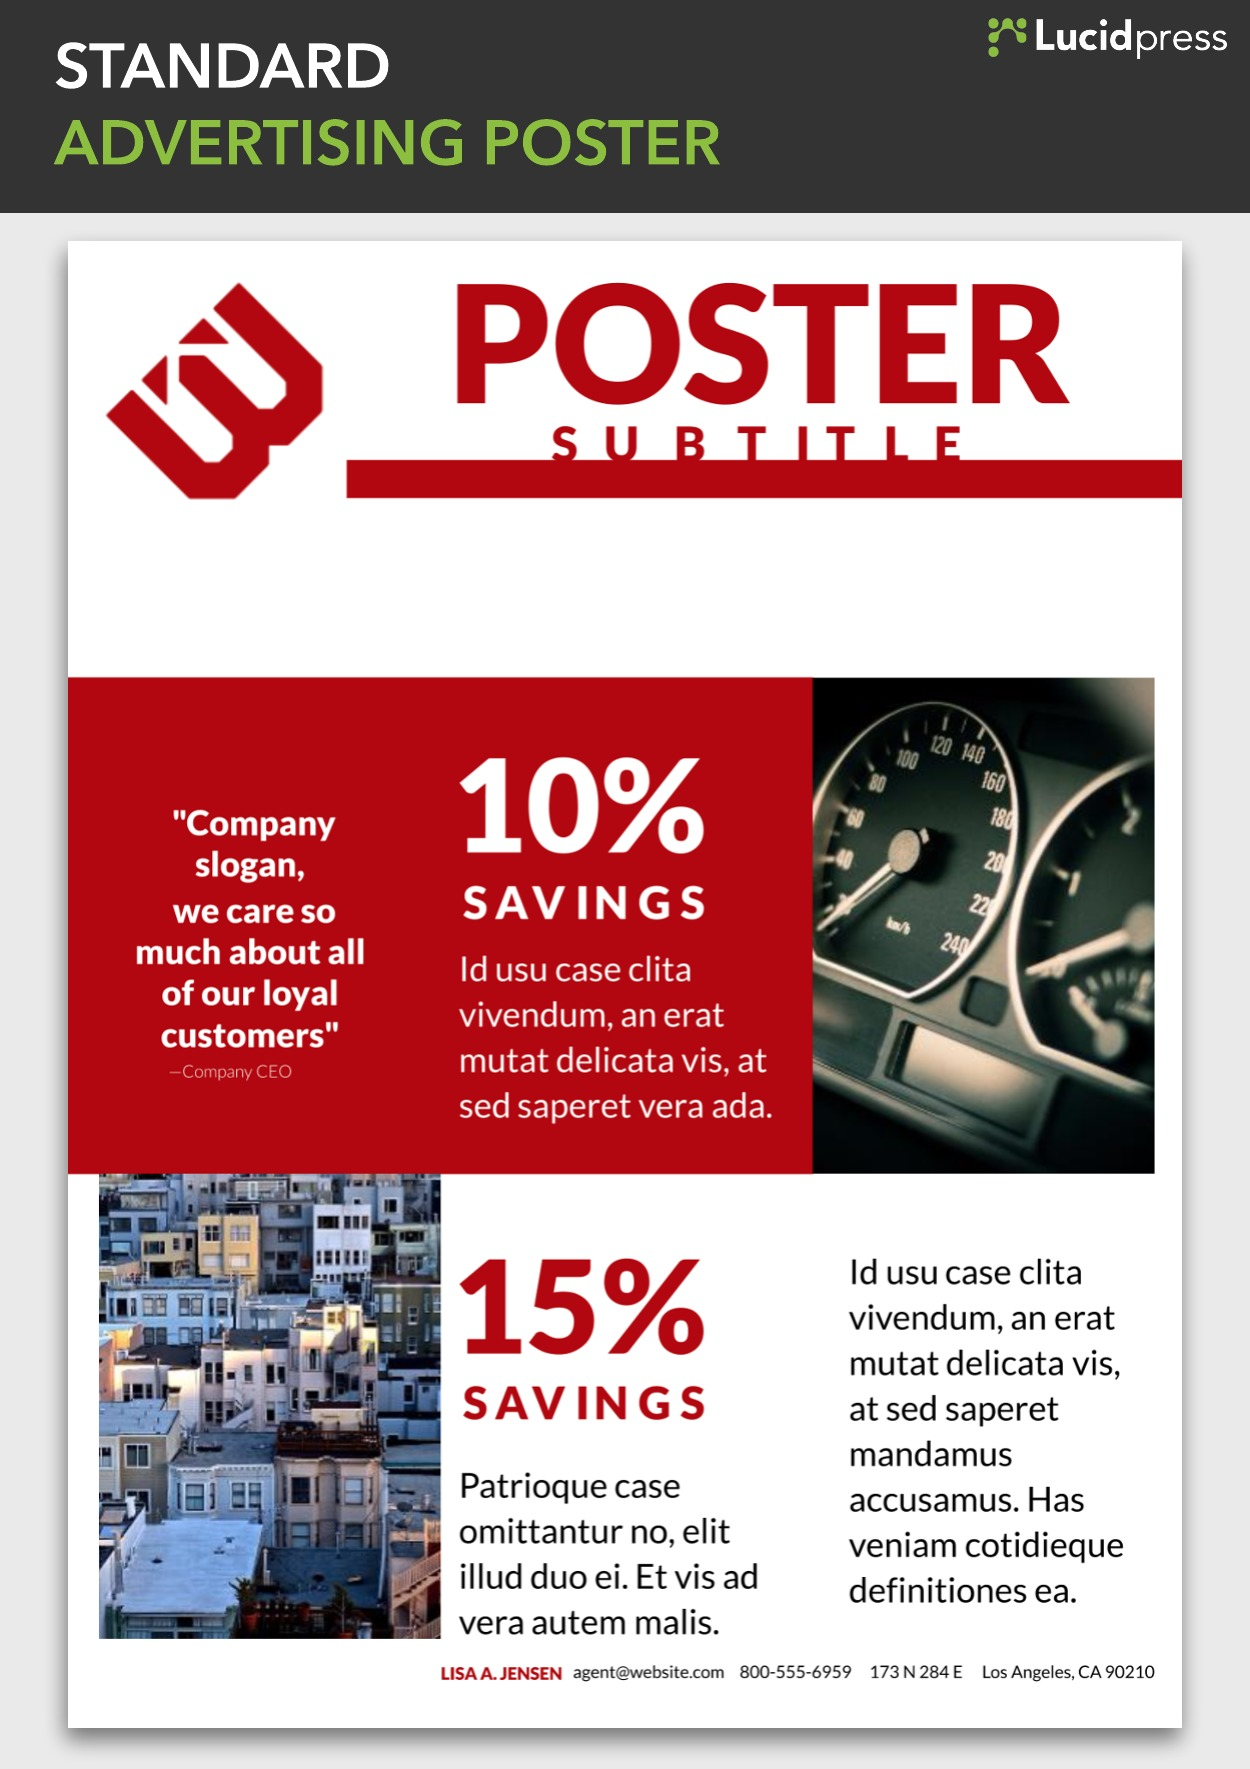 standard advertising poster template - Poster Design Ideas